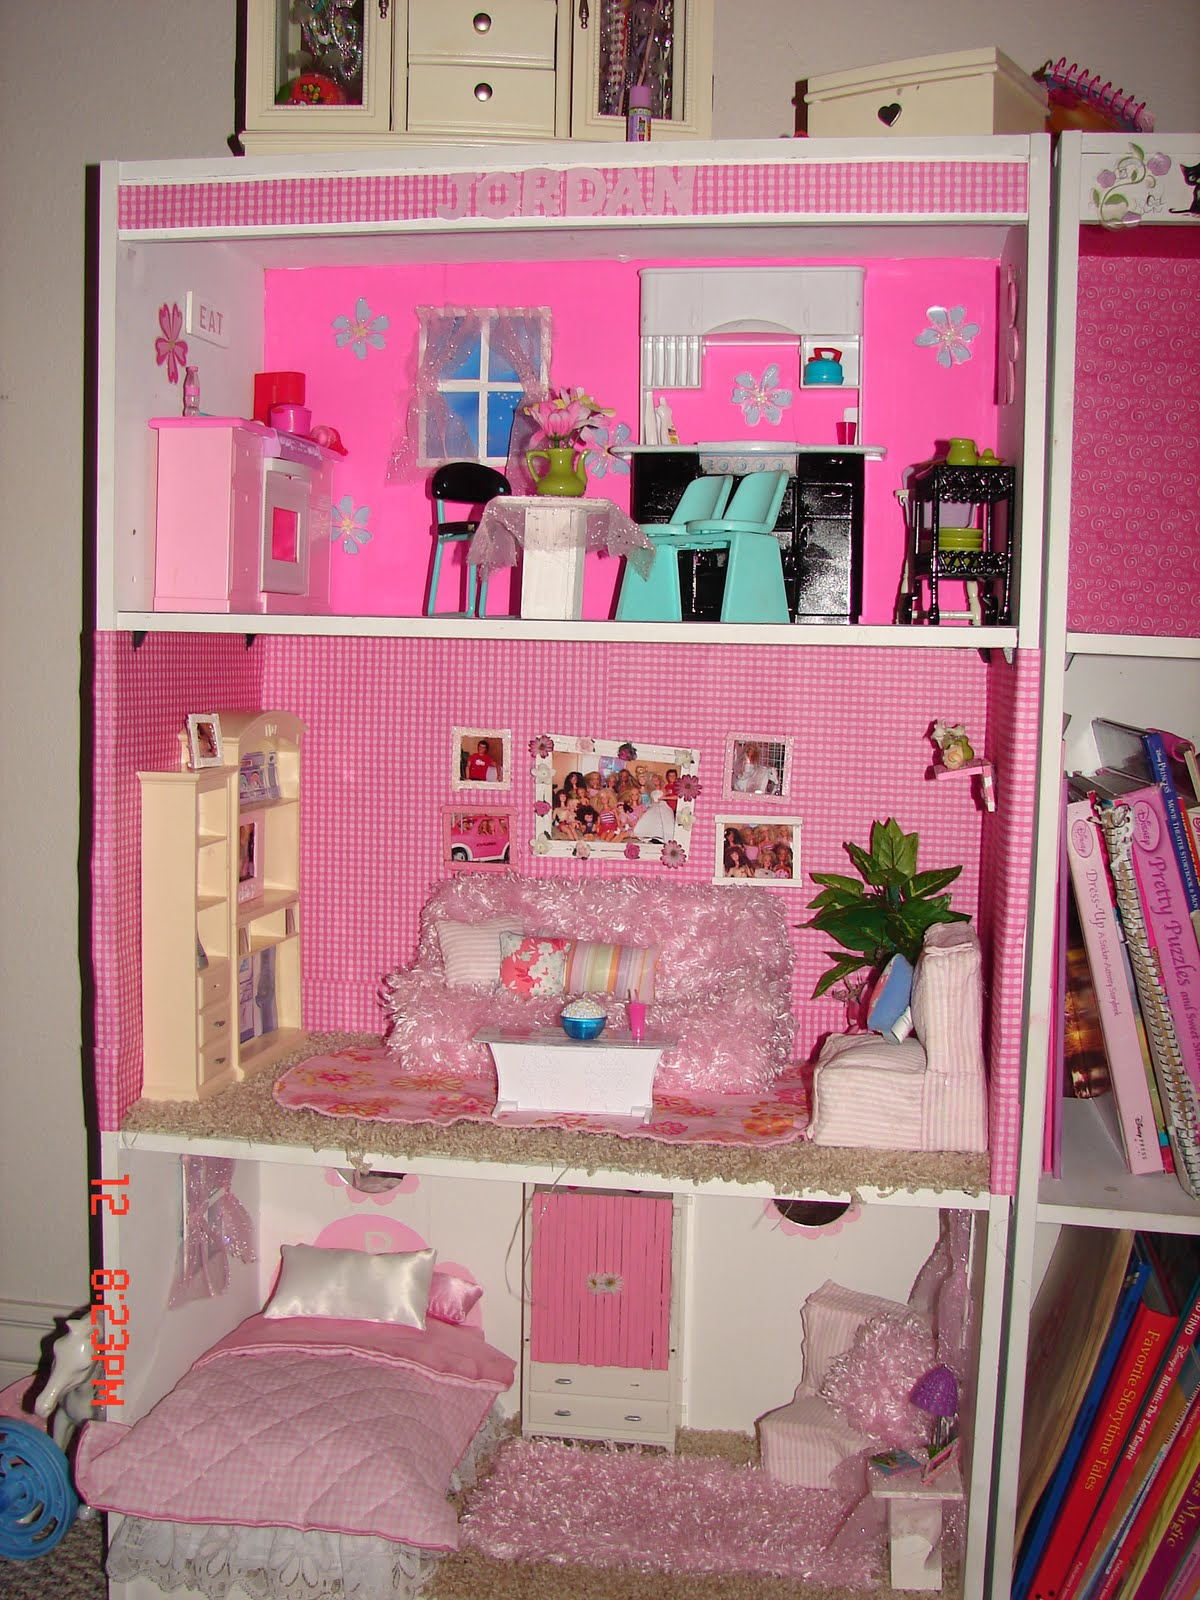 Good create your own dream house game 3 barbie doll house 6 jpg Create your own dream house